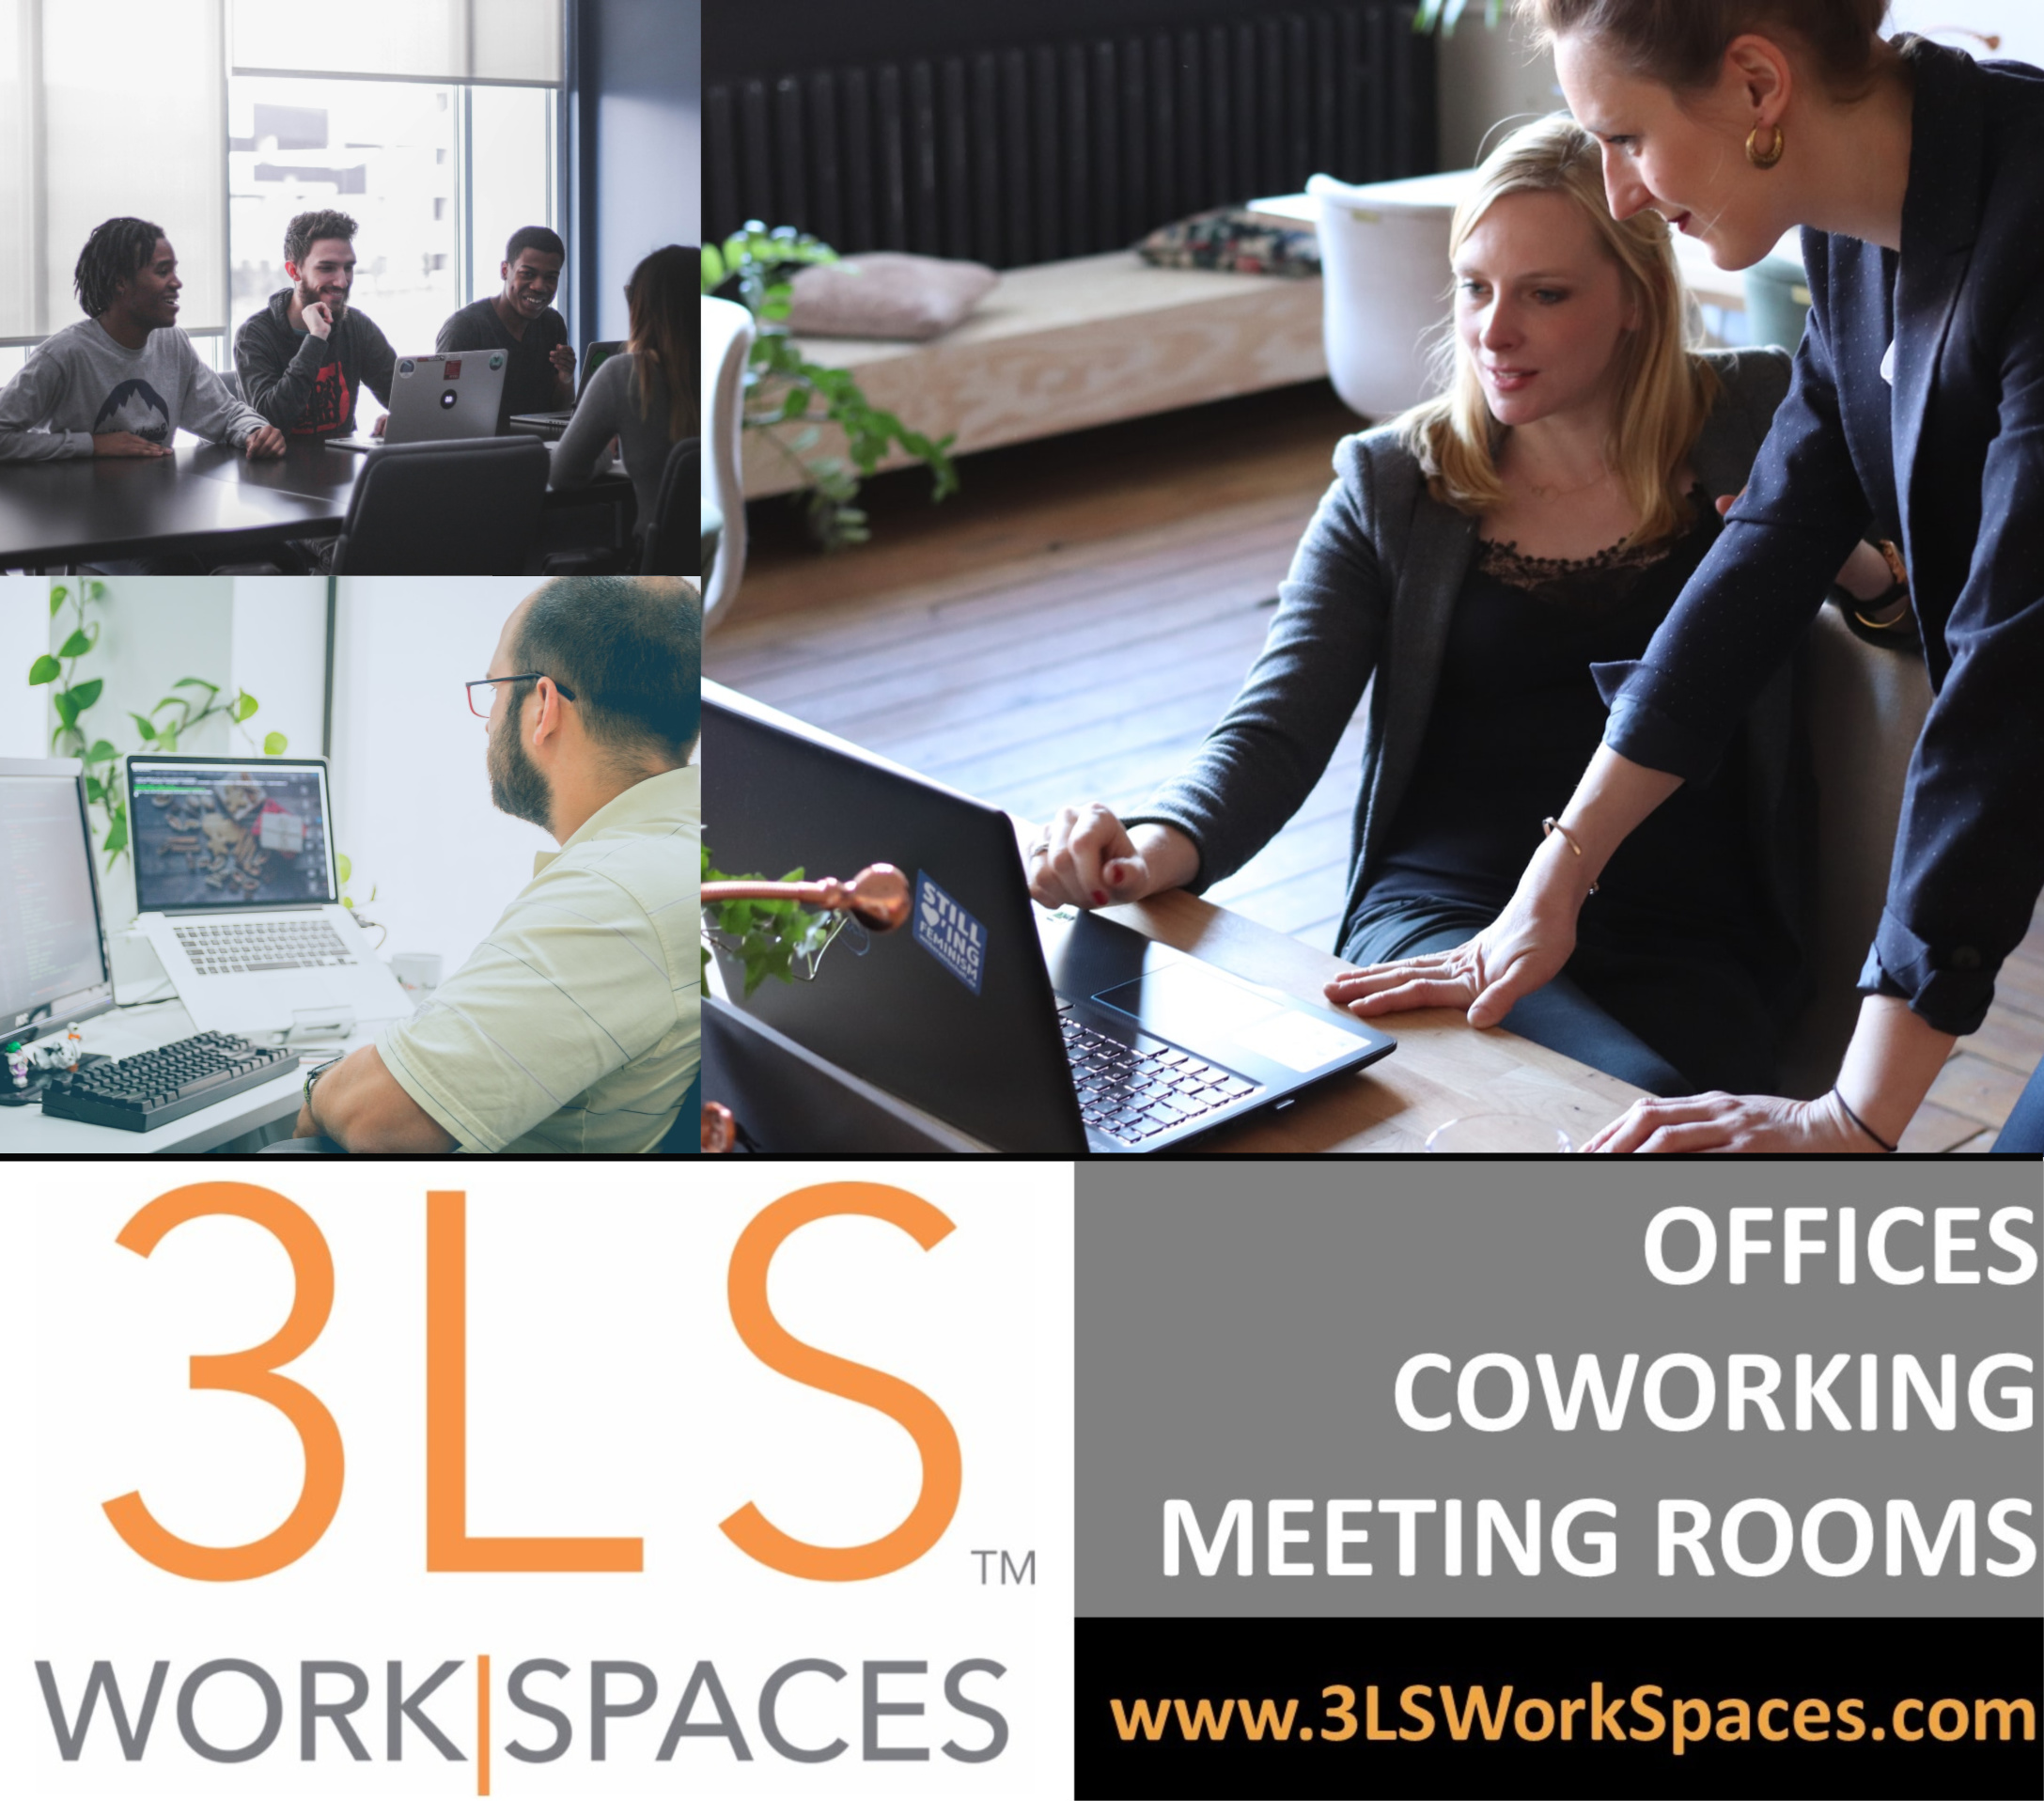 3LS_Work|Spaces_Nashville_Goodlettsville_offices_coworking_meeting_rooms